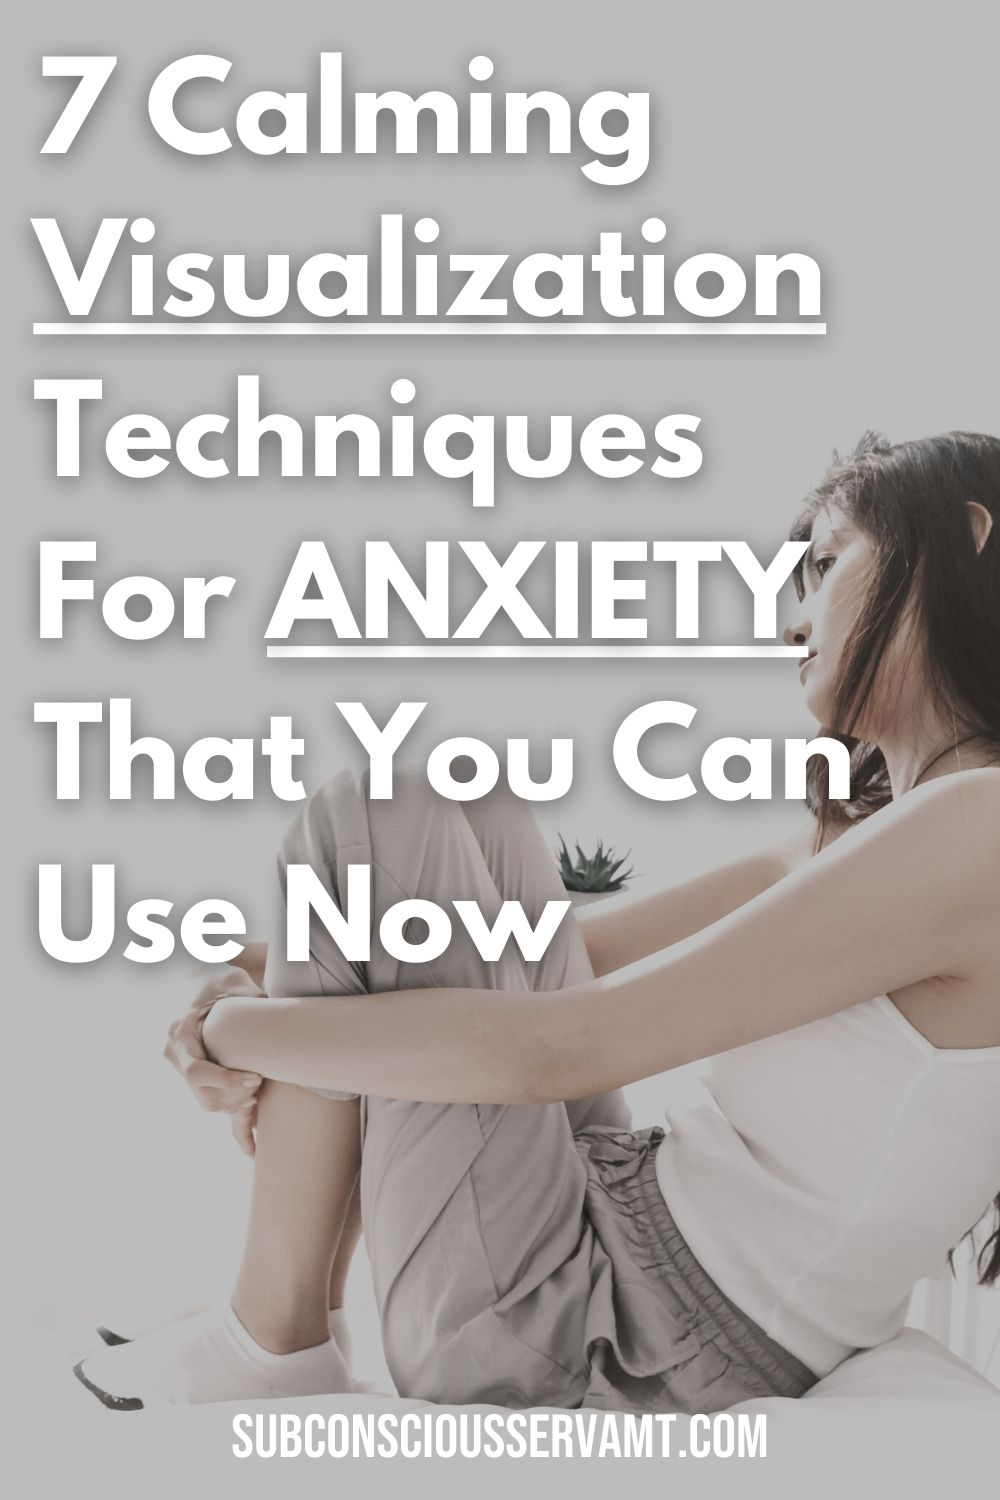 7 Calming Visualization Techniques For Anxiety That You Can Use Now